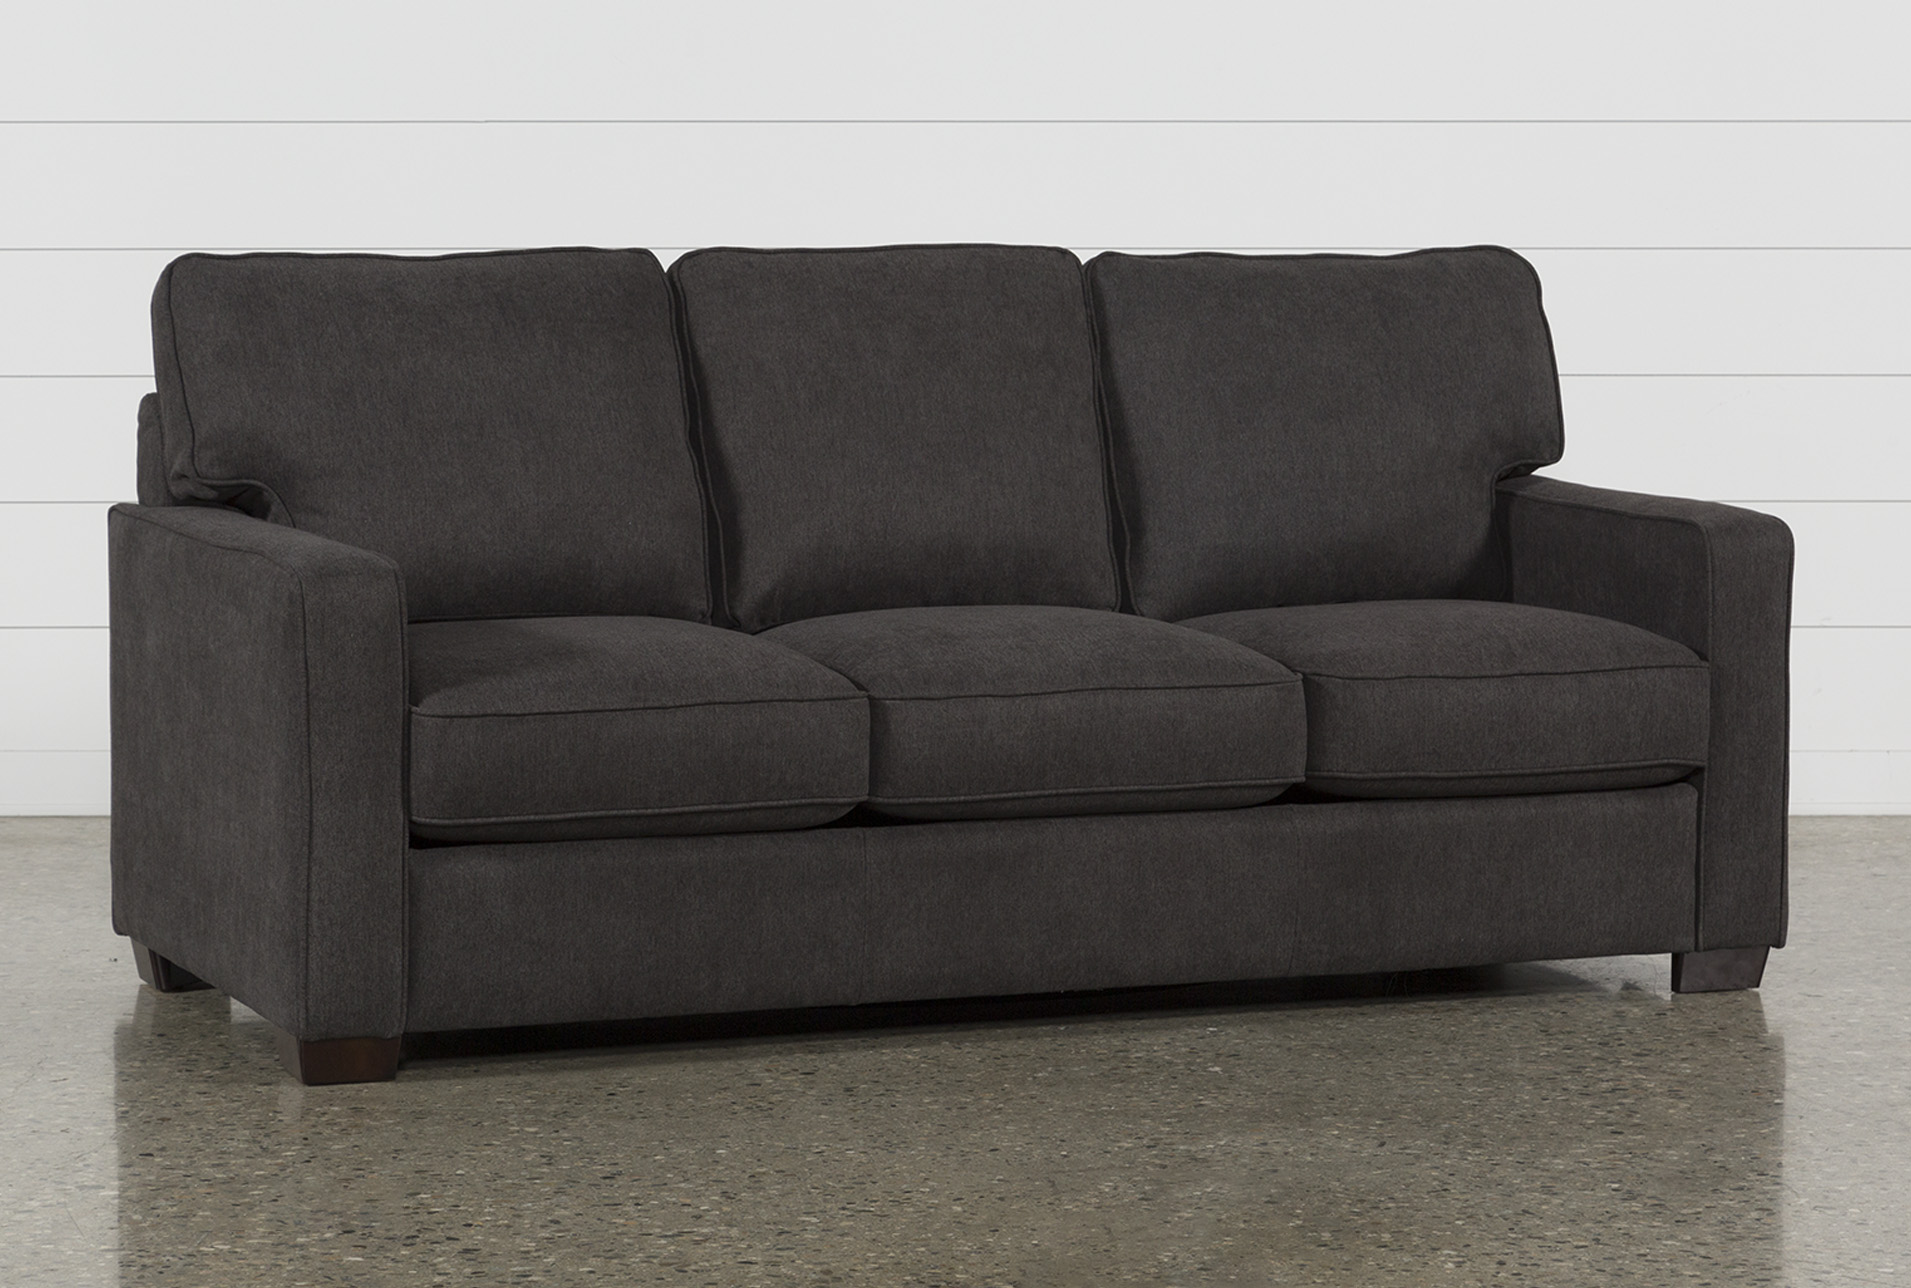 Morris Charcoal Queen Sofa Sleeper (Qty: 1) has been successfully added to  your Cart.